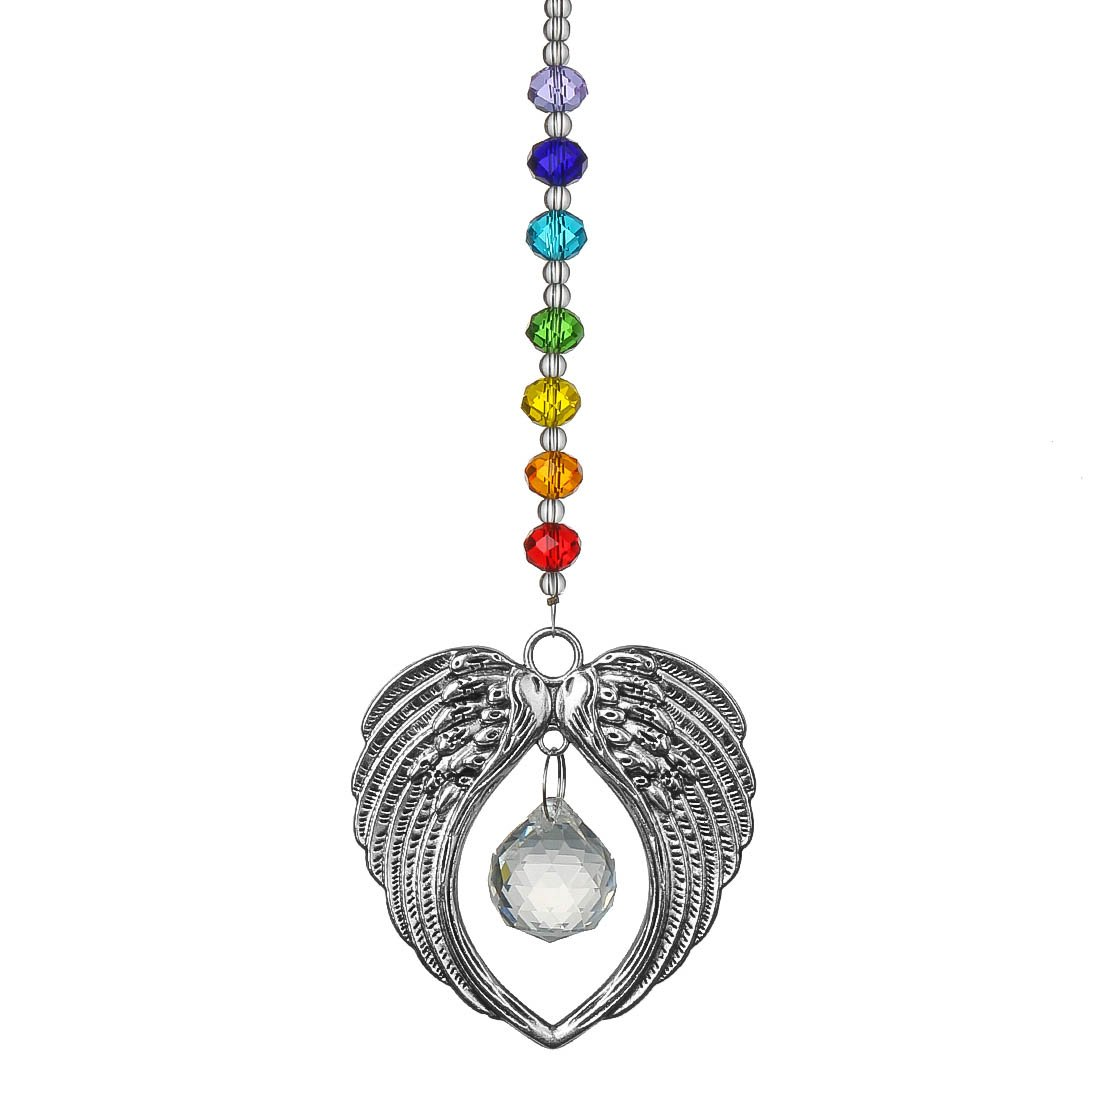 Qf Chakra Angel Wing Pendant with Crystal Ball Rainbow Suncatcher Window Home Decor